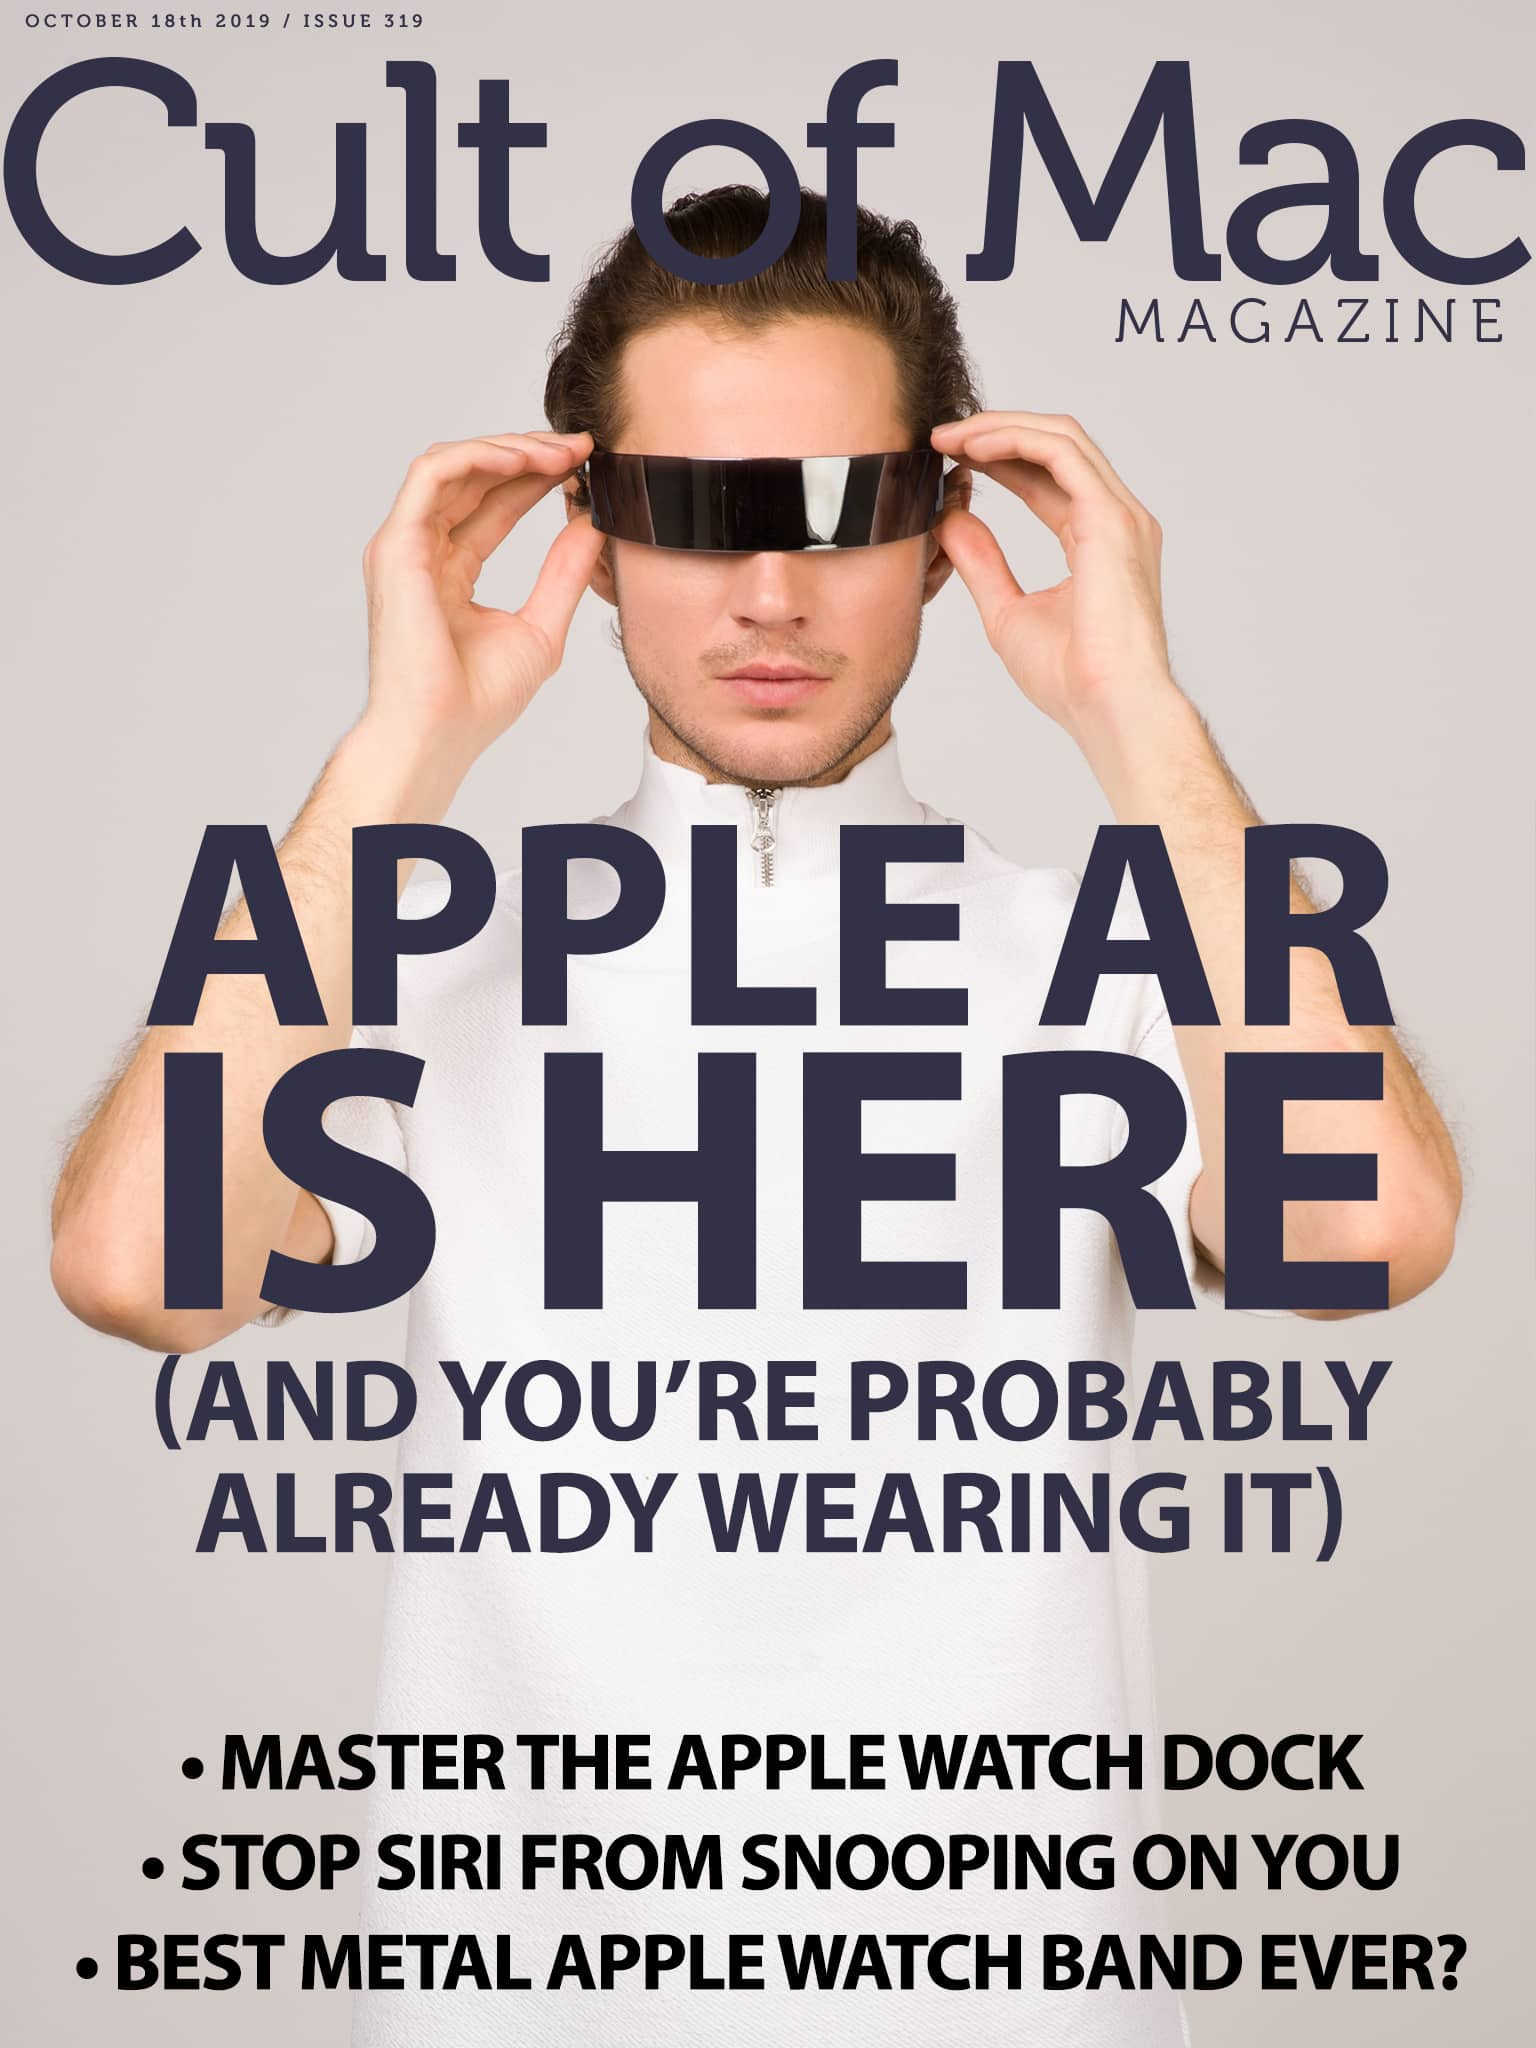 Apple AR is here: Cult of Mac Magazine 319